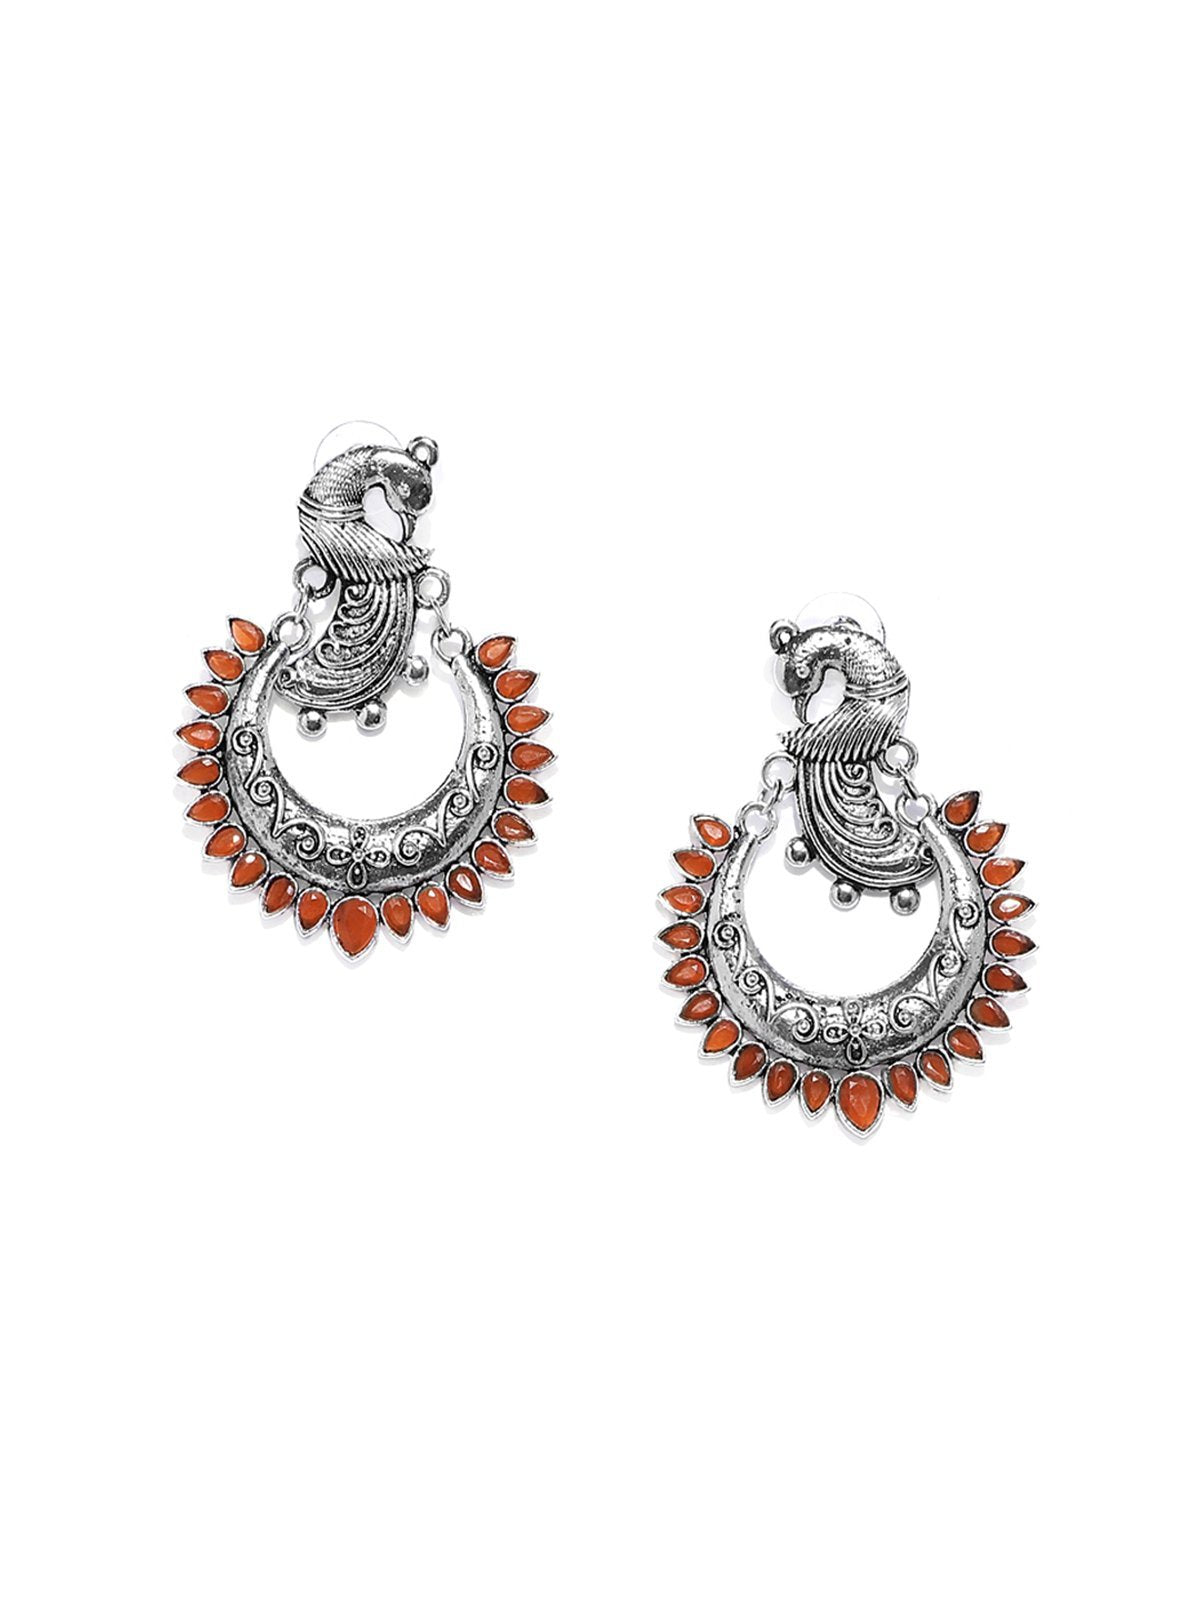 Antique Silver Tone Peacock Inspired Chandbali Earring